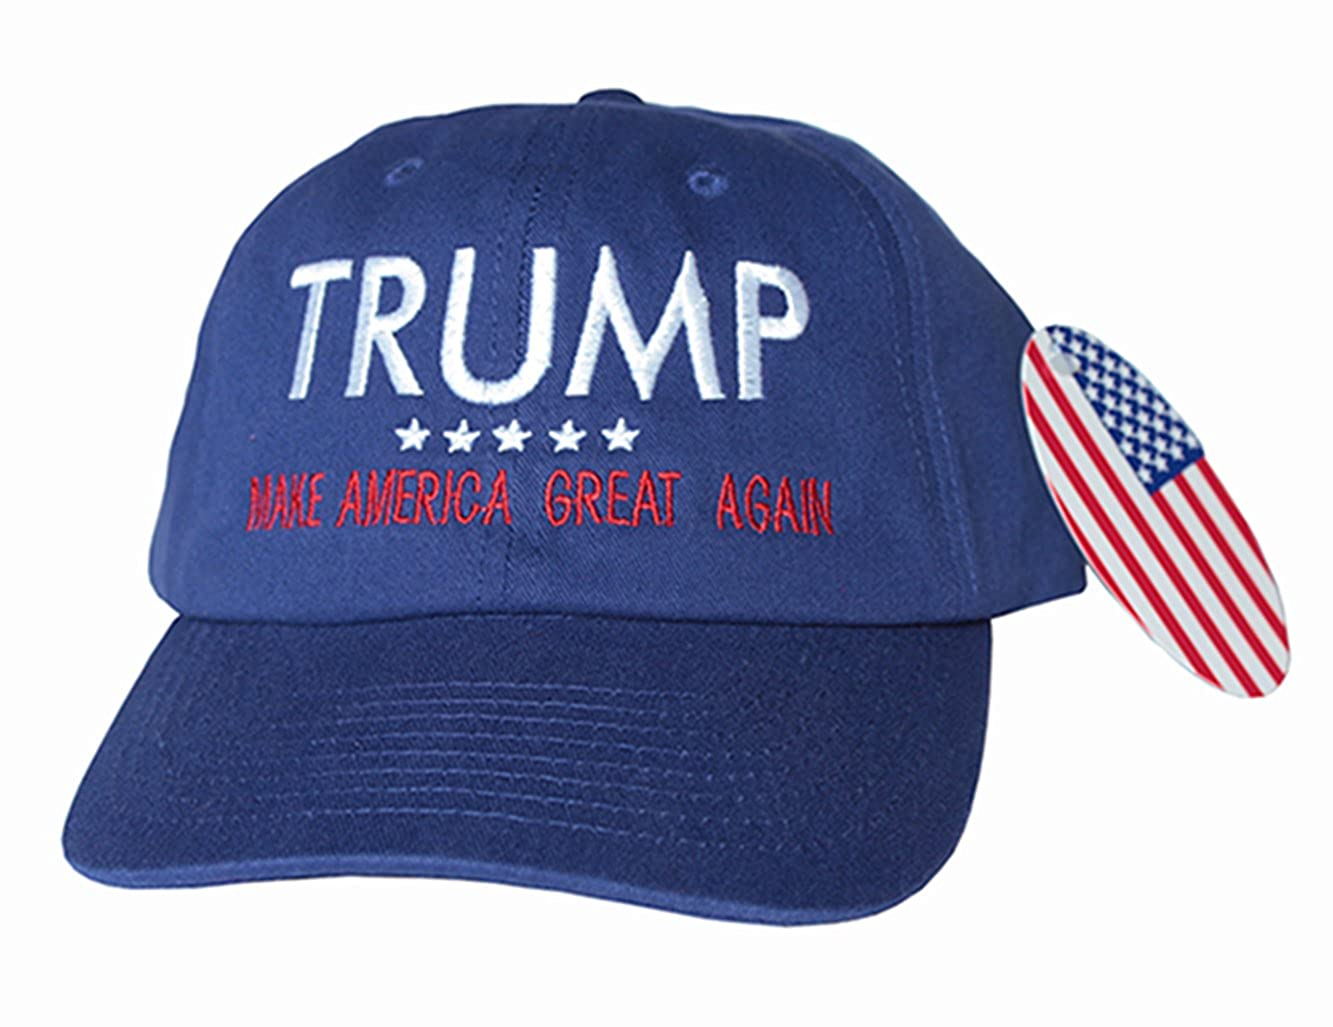 7eb1f7b2c Donald Trump MAKE AMERICA GREAT AGAIN Embroidered HAT President 2016 Pence  (ROYAL)